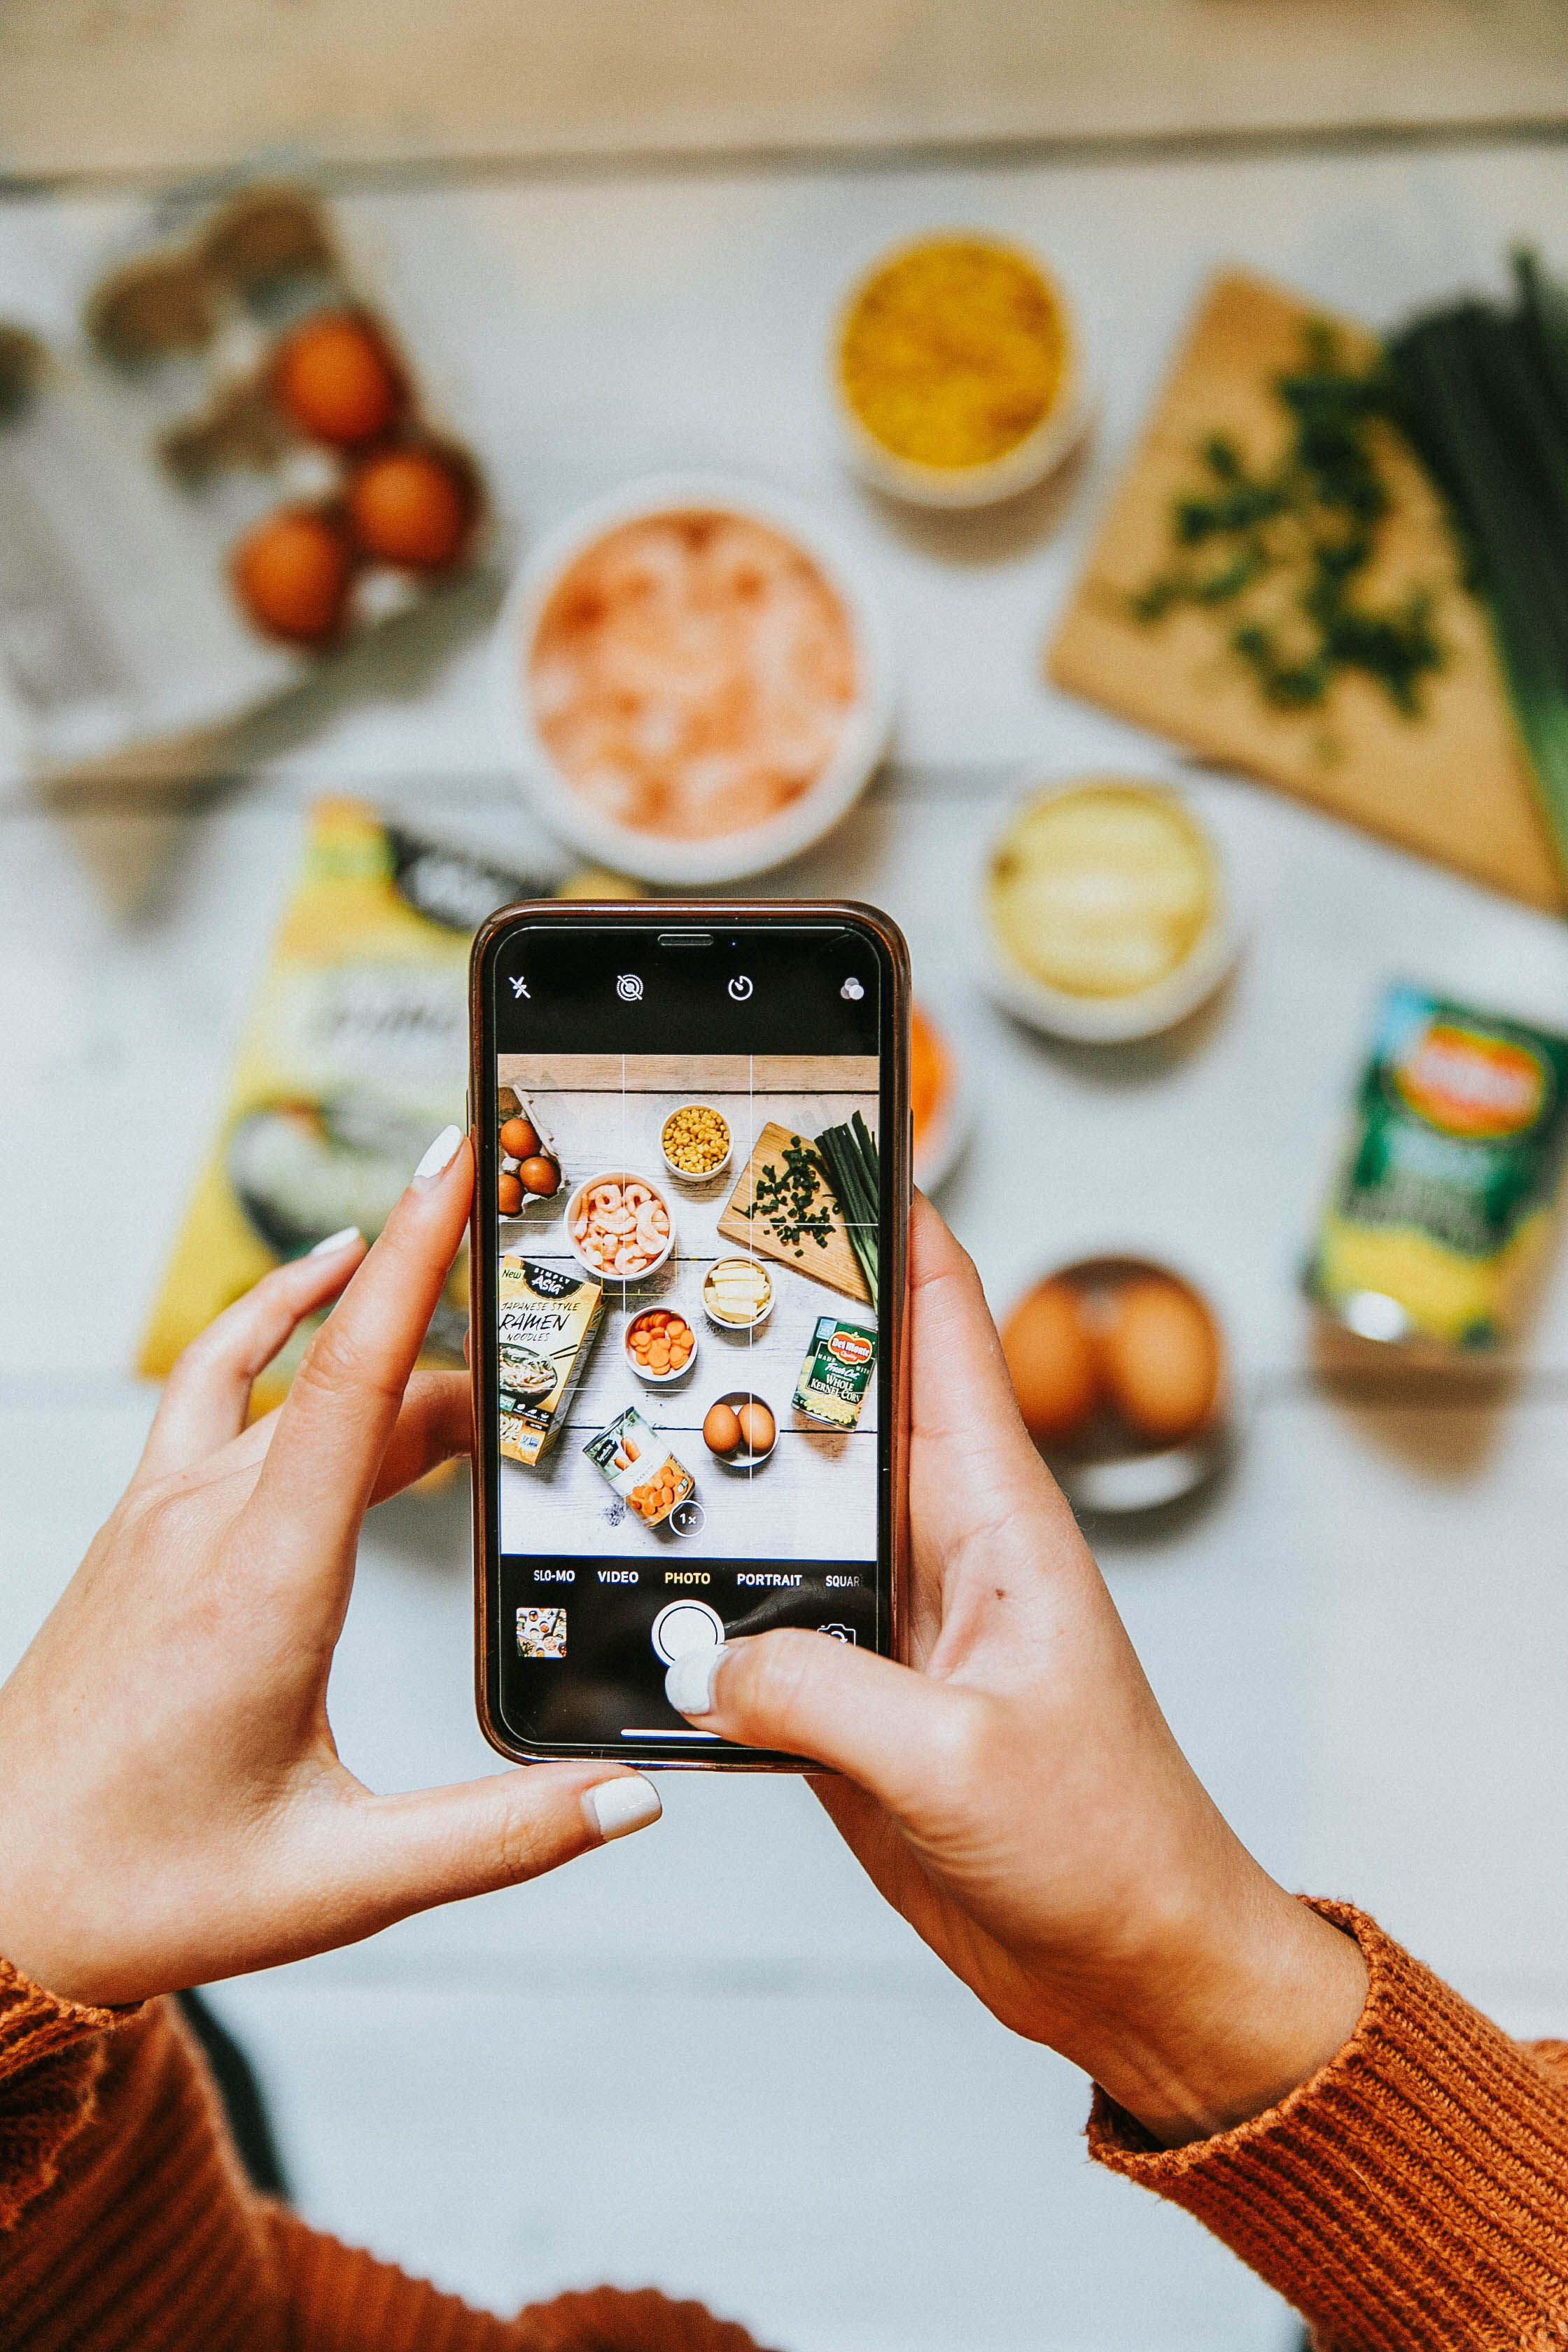 Tips To Take Gorgeous Photos On Your Phone Of Food. How To